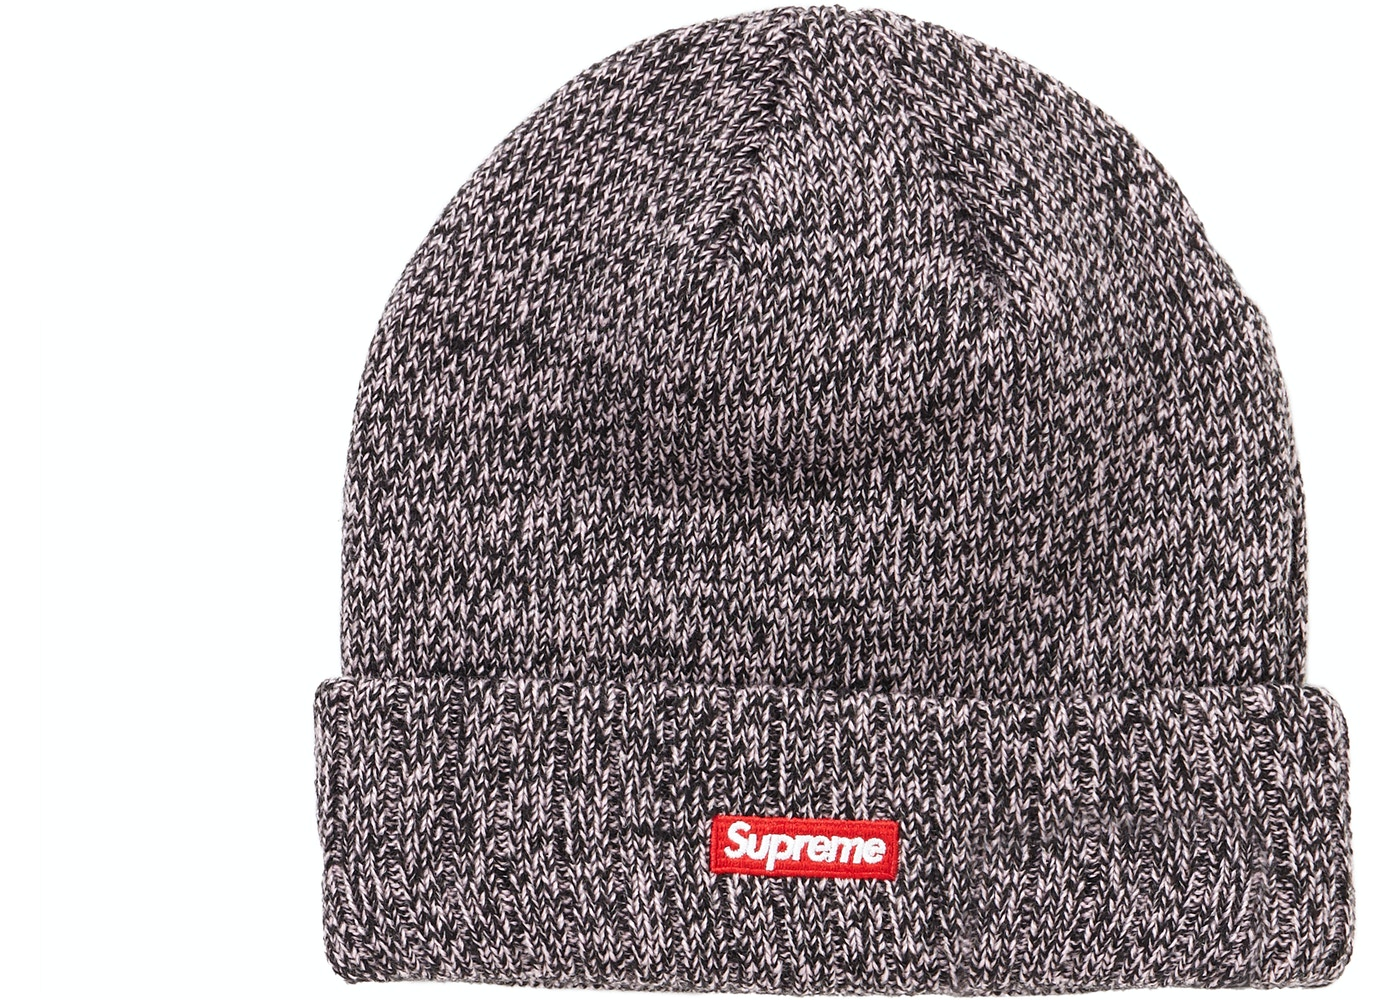 Streetwear - Supreme Headwear - New Lowest Asks 10ec4eb5013c